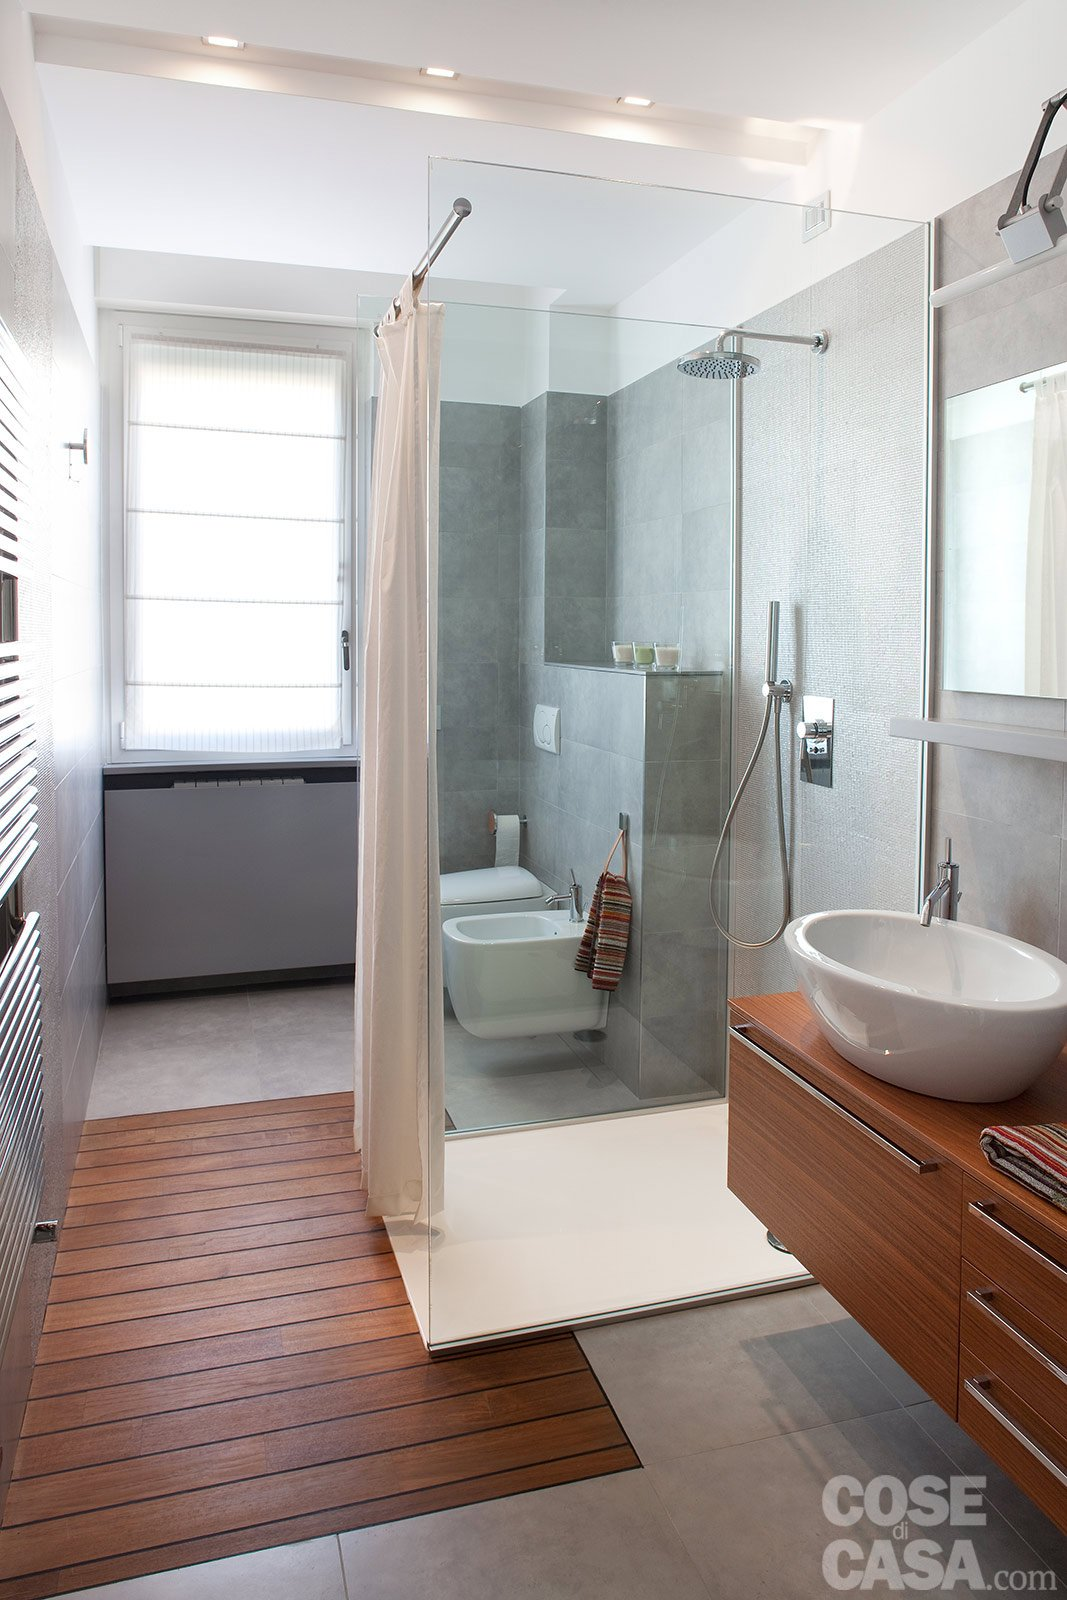 FOCUS ON: Teak in bagno